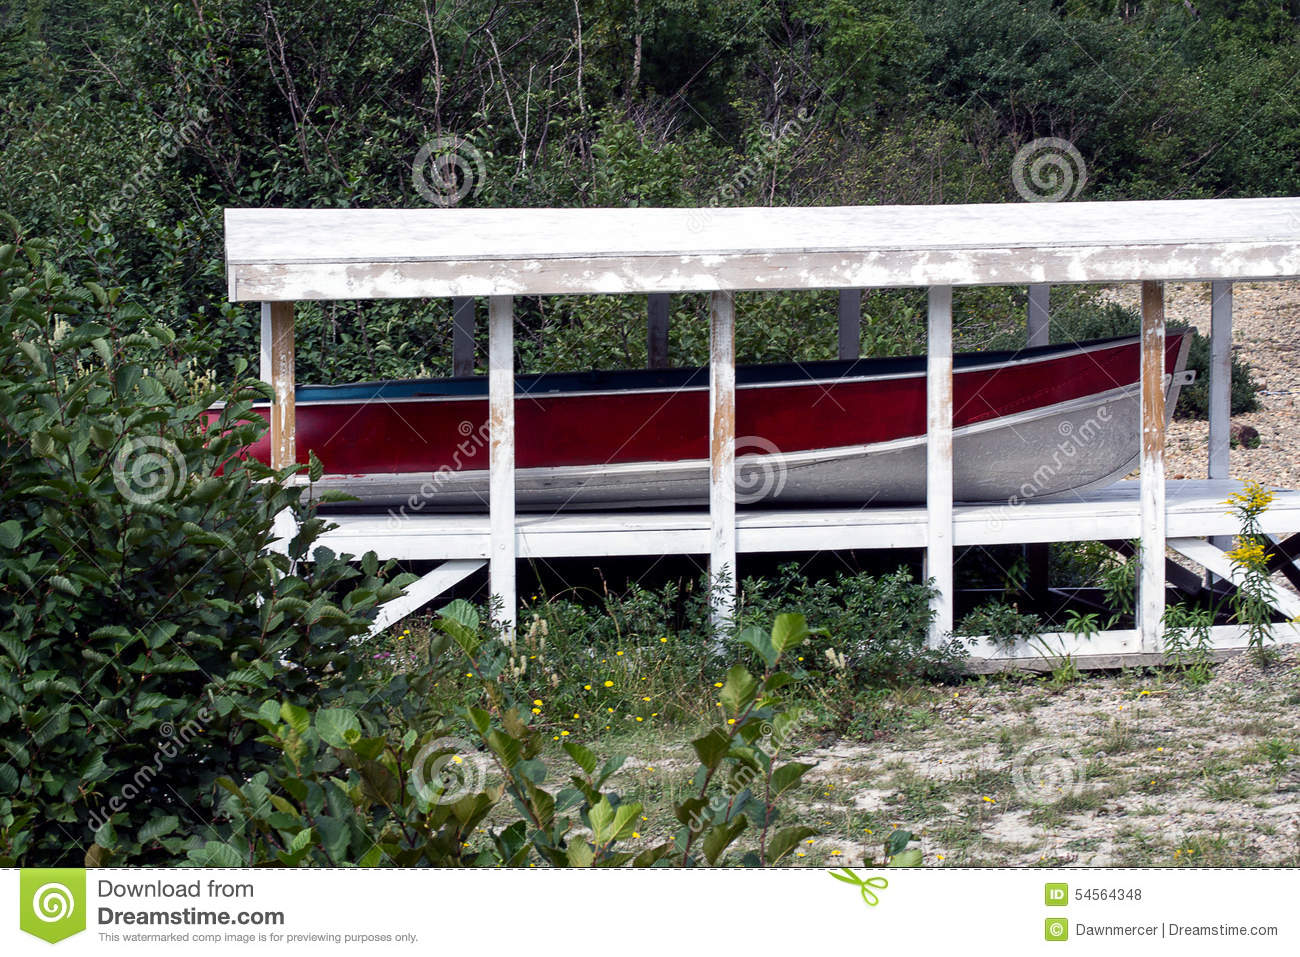 Boat Shelter Plans : Red trim aluminum boat in shelter on beach stock